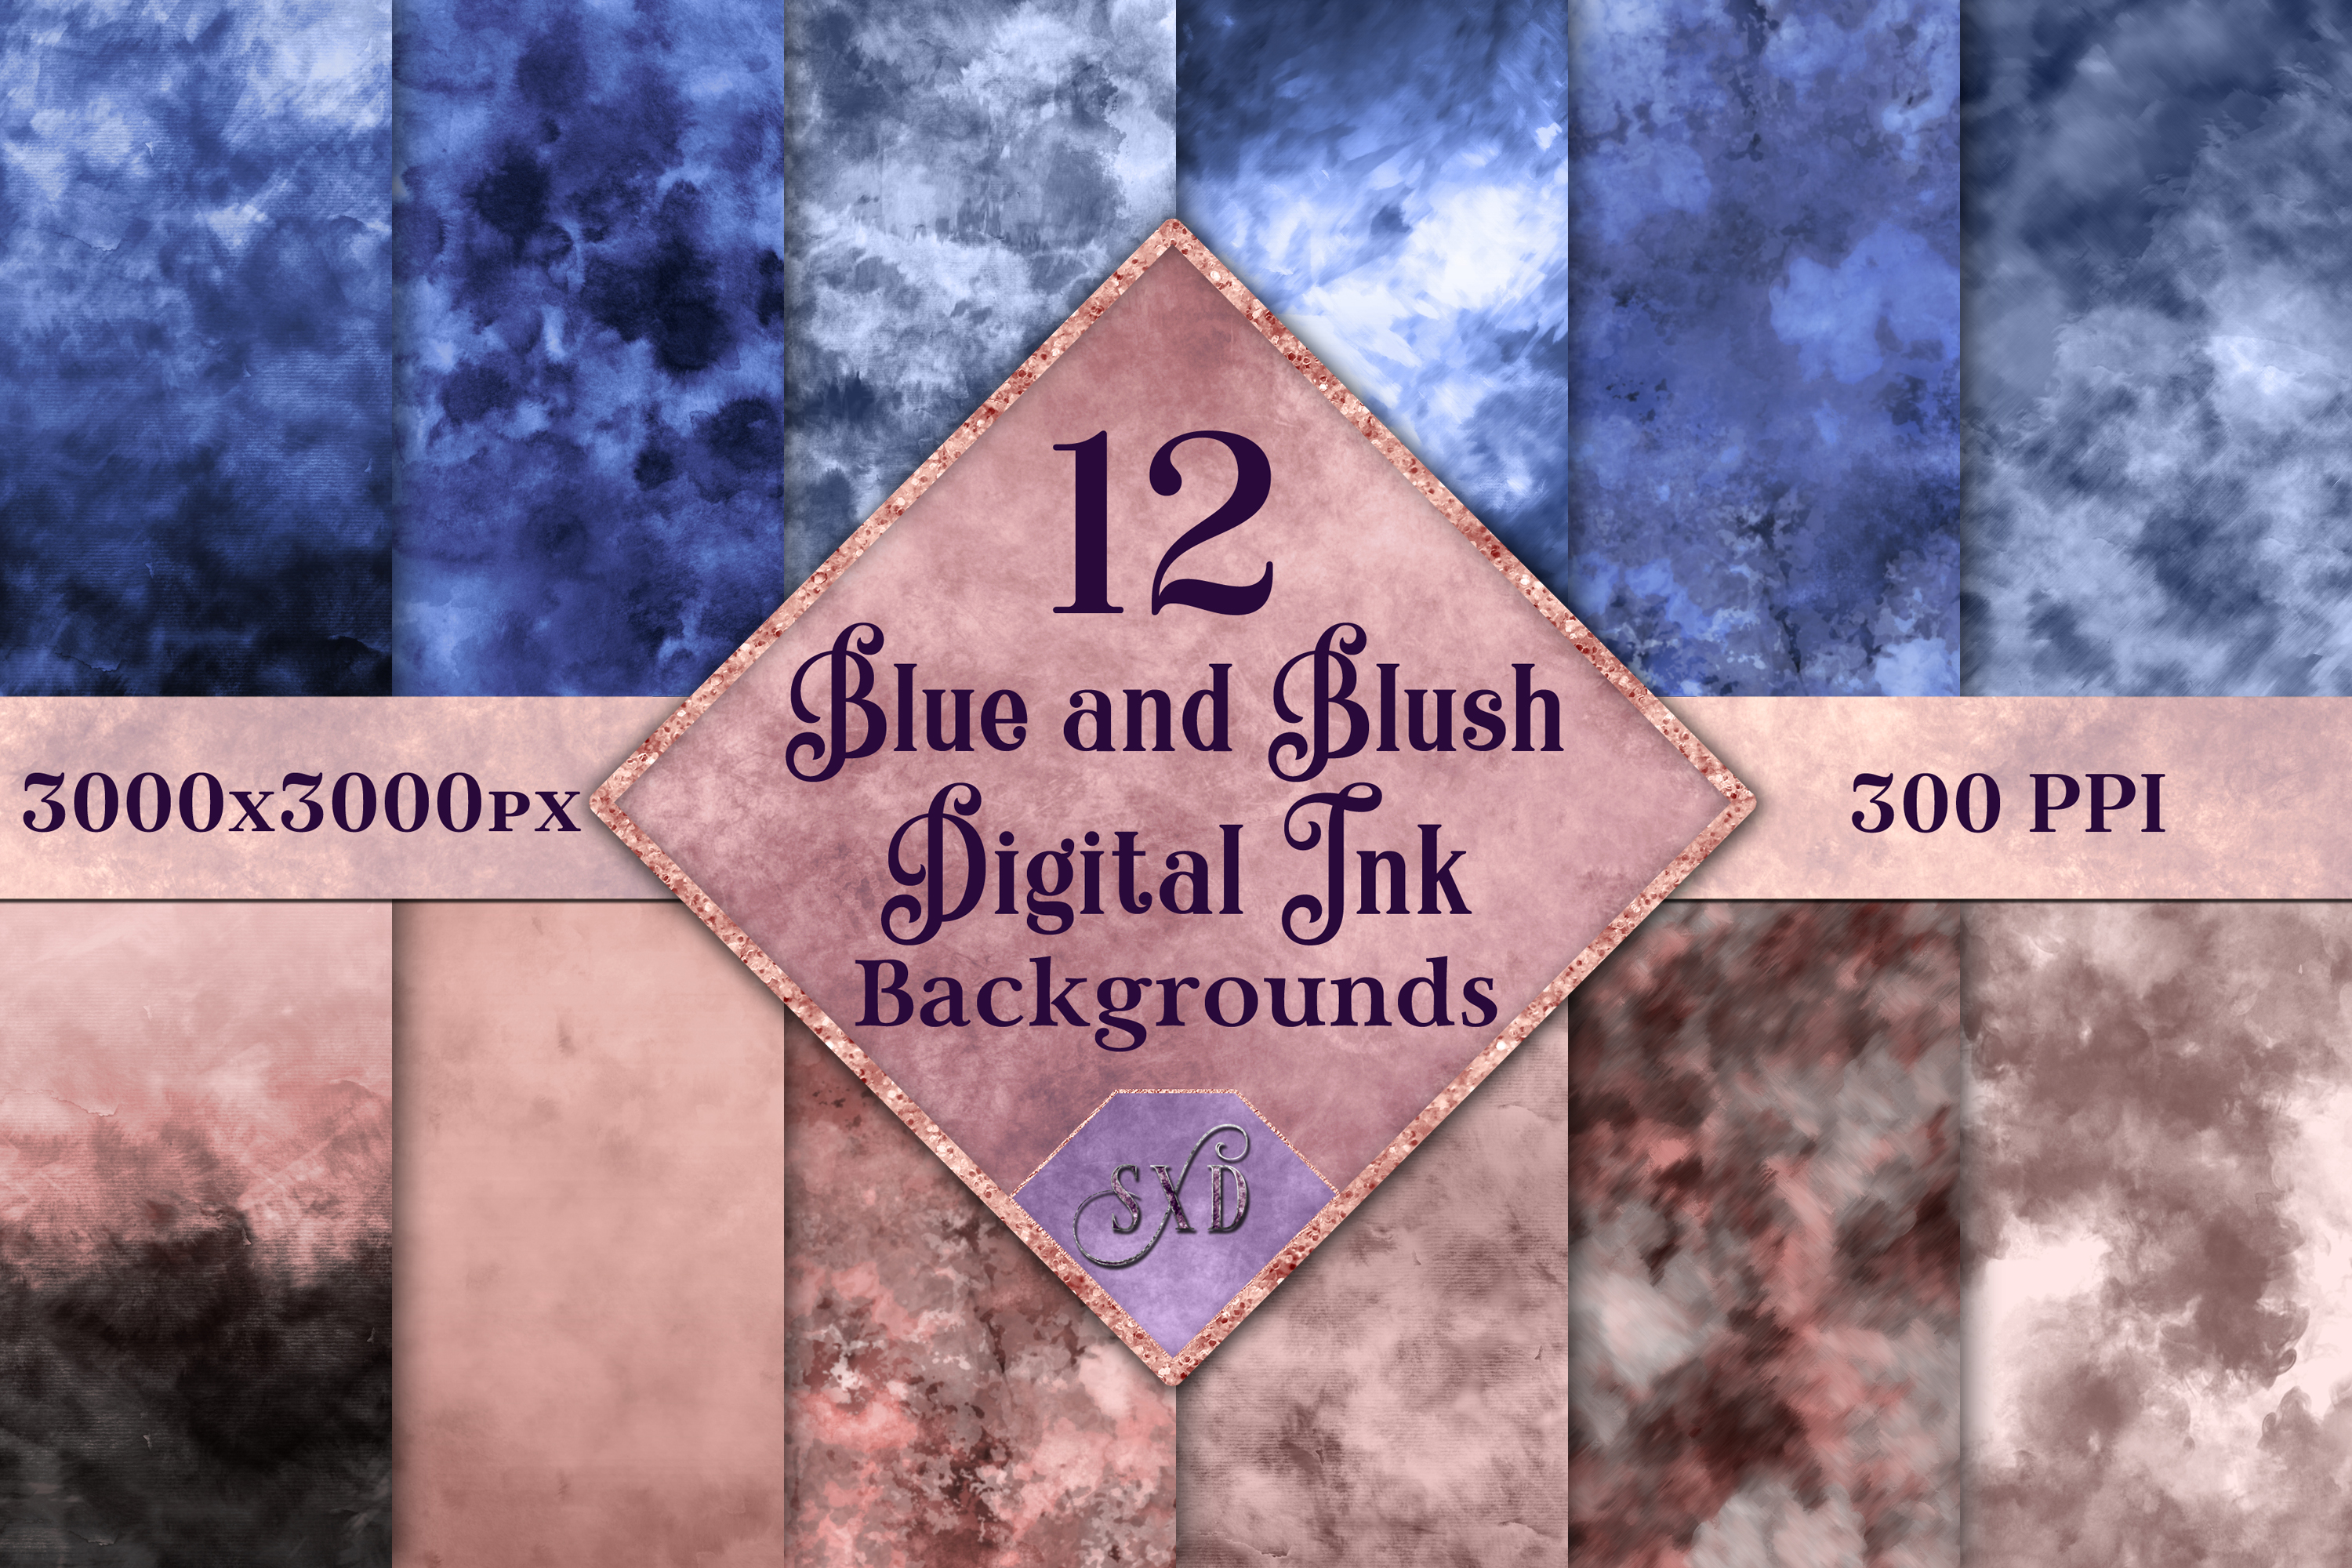 Blue and Blush Digital Ink Backgrounds - 12 Image Textures example image 1